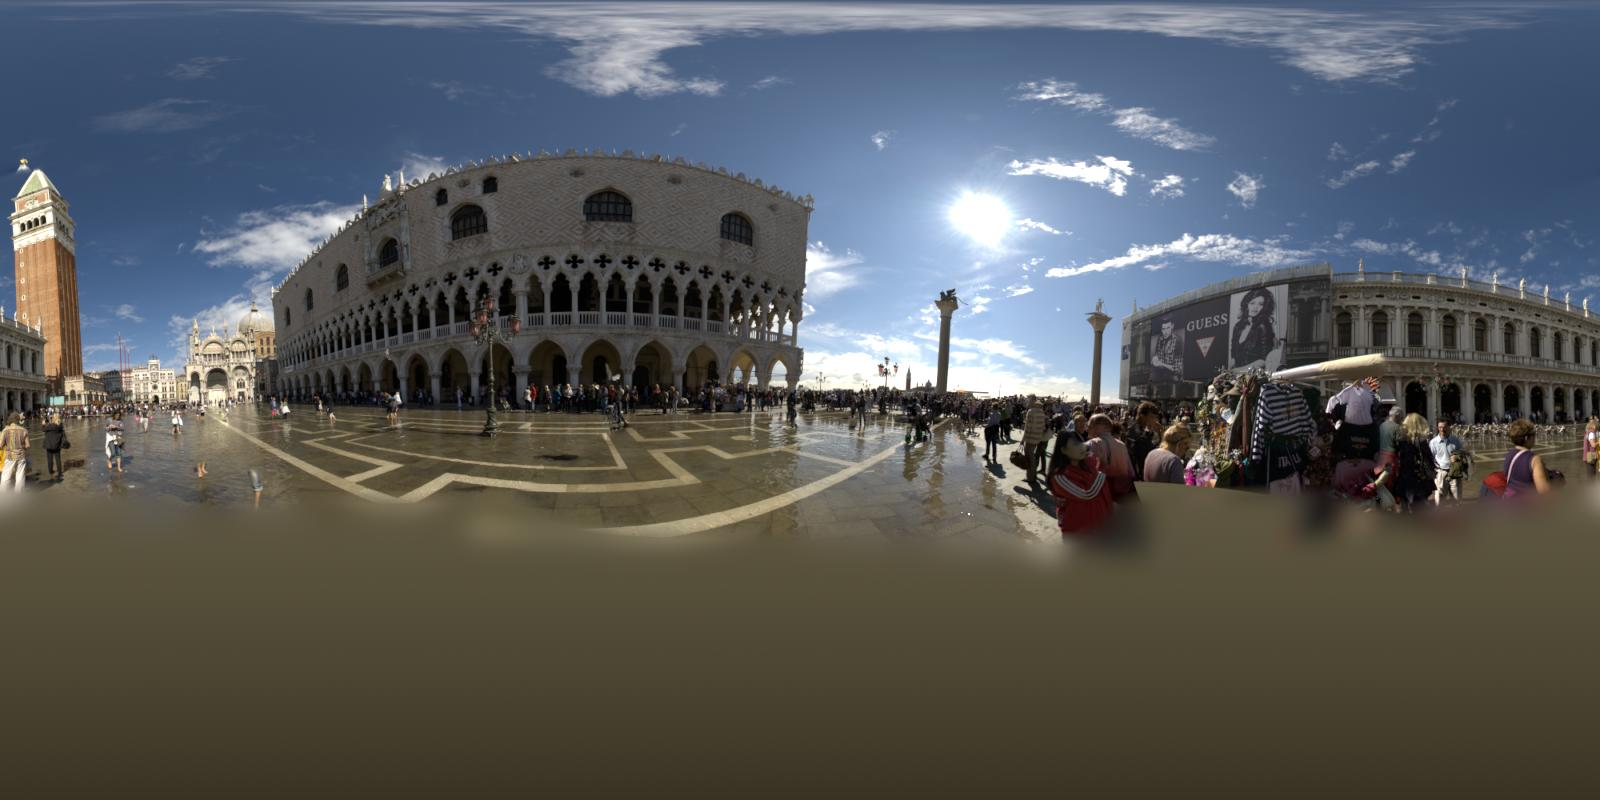 360 degree panoramic photo free download